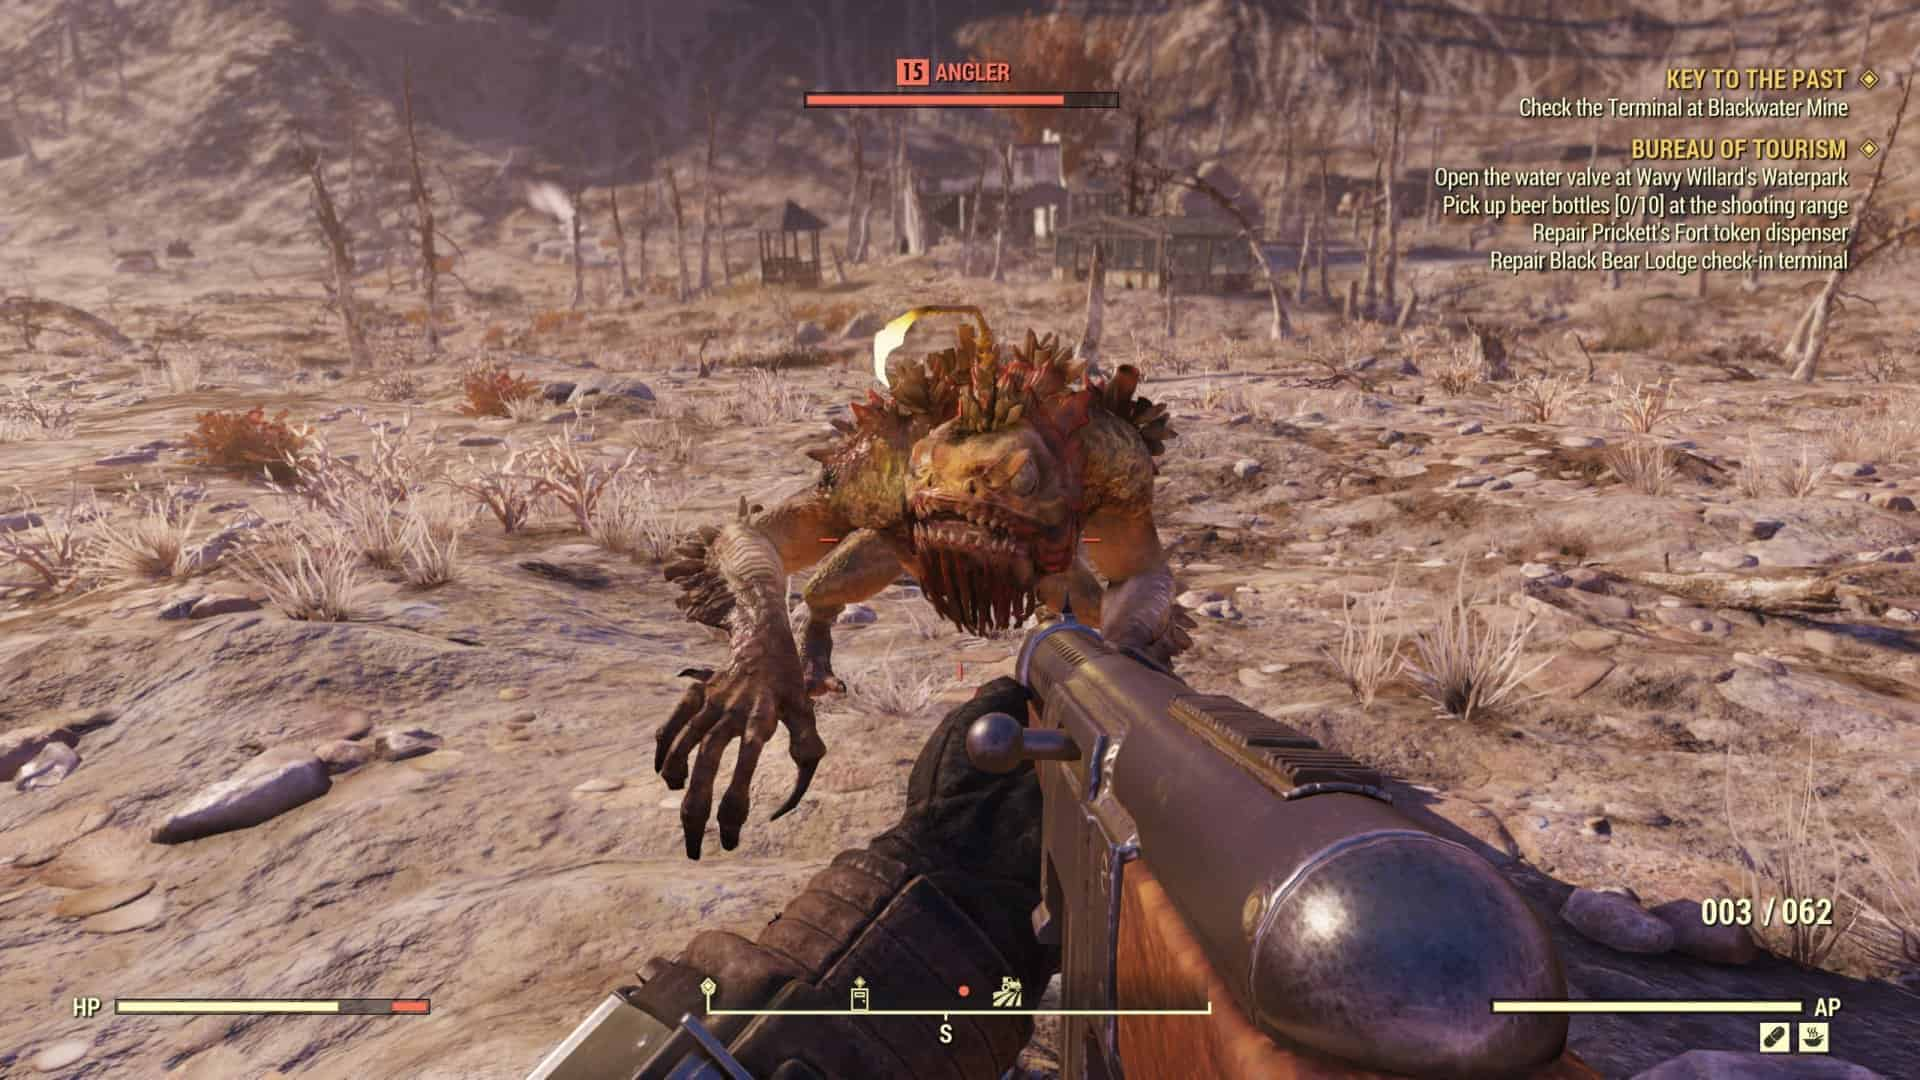 Fallout 76 Download Free PC game - Install-Game